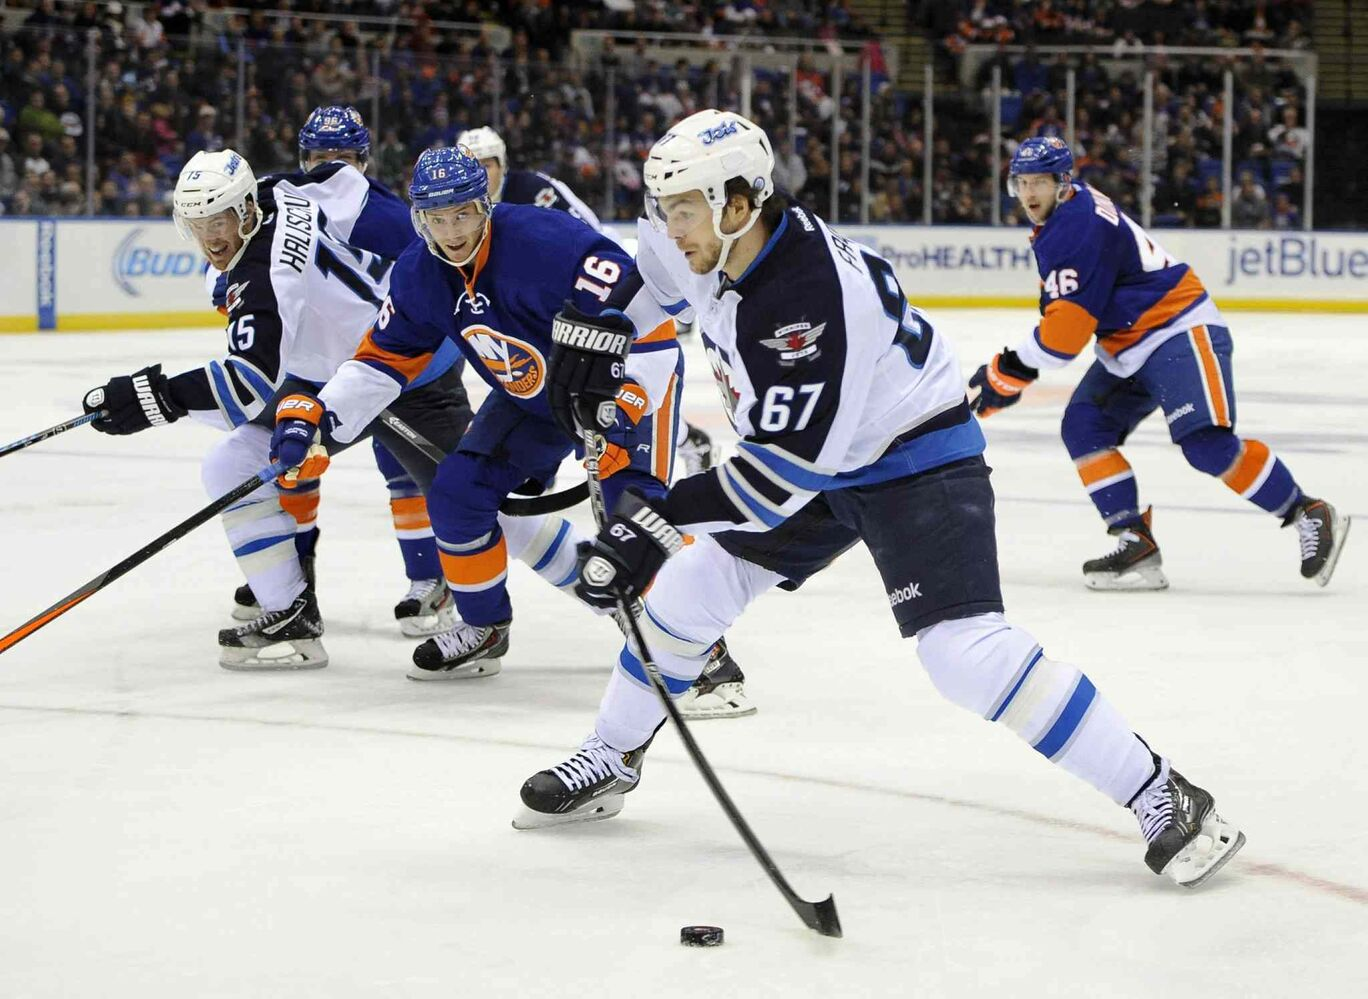 Winnipeg Jets forward Michael Frolik (67) takes a shot on goal as Peter Regin (16) of the New York Islanders in the first period. (Kathy Kmonicek / The Associated Press)